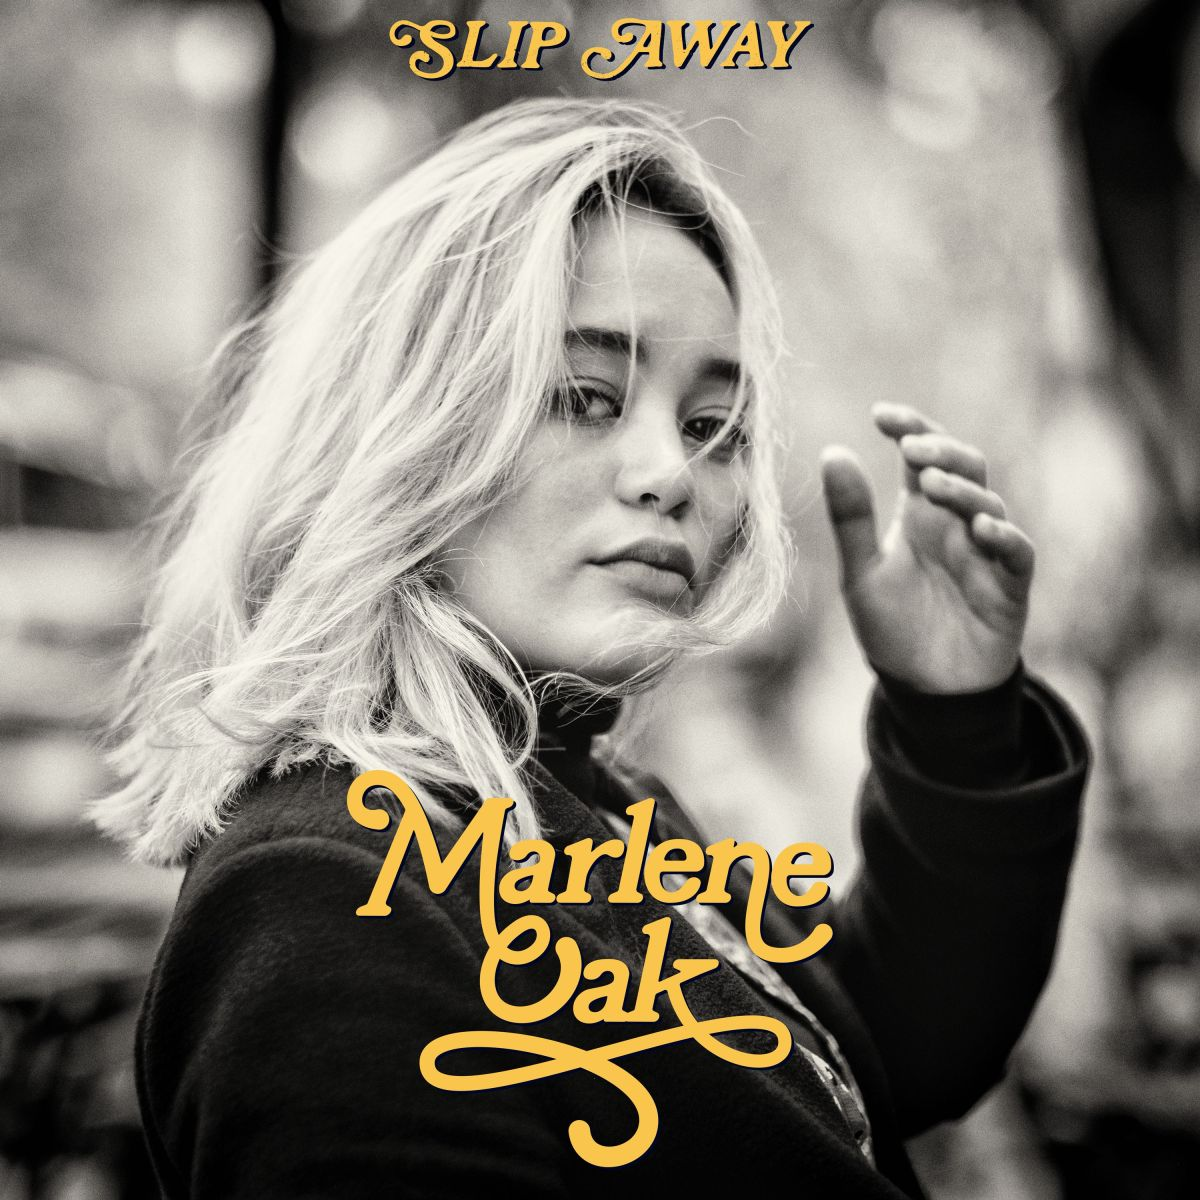 NEW MUSIC: Marlene Oak – Slip Away